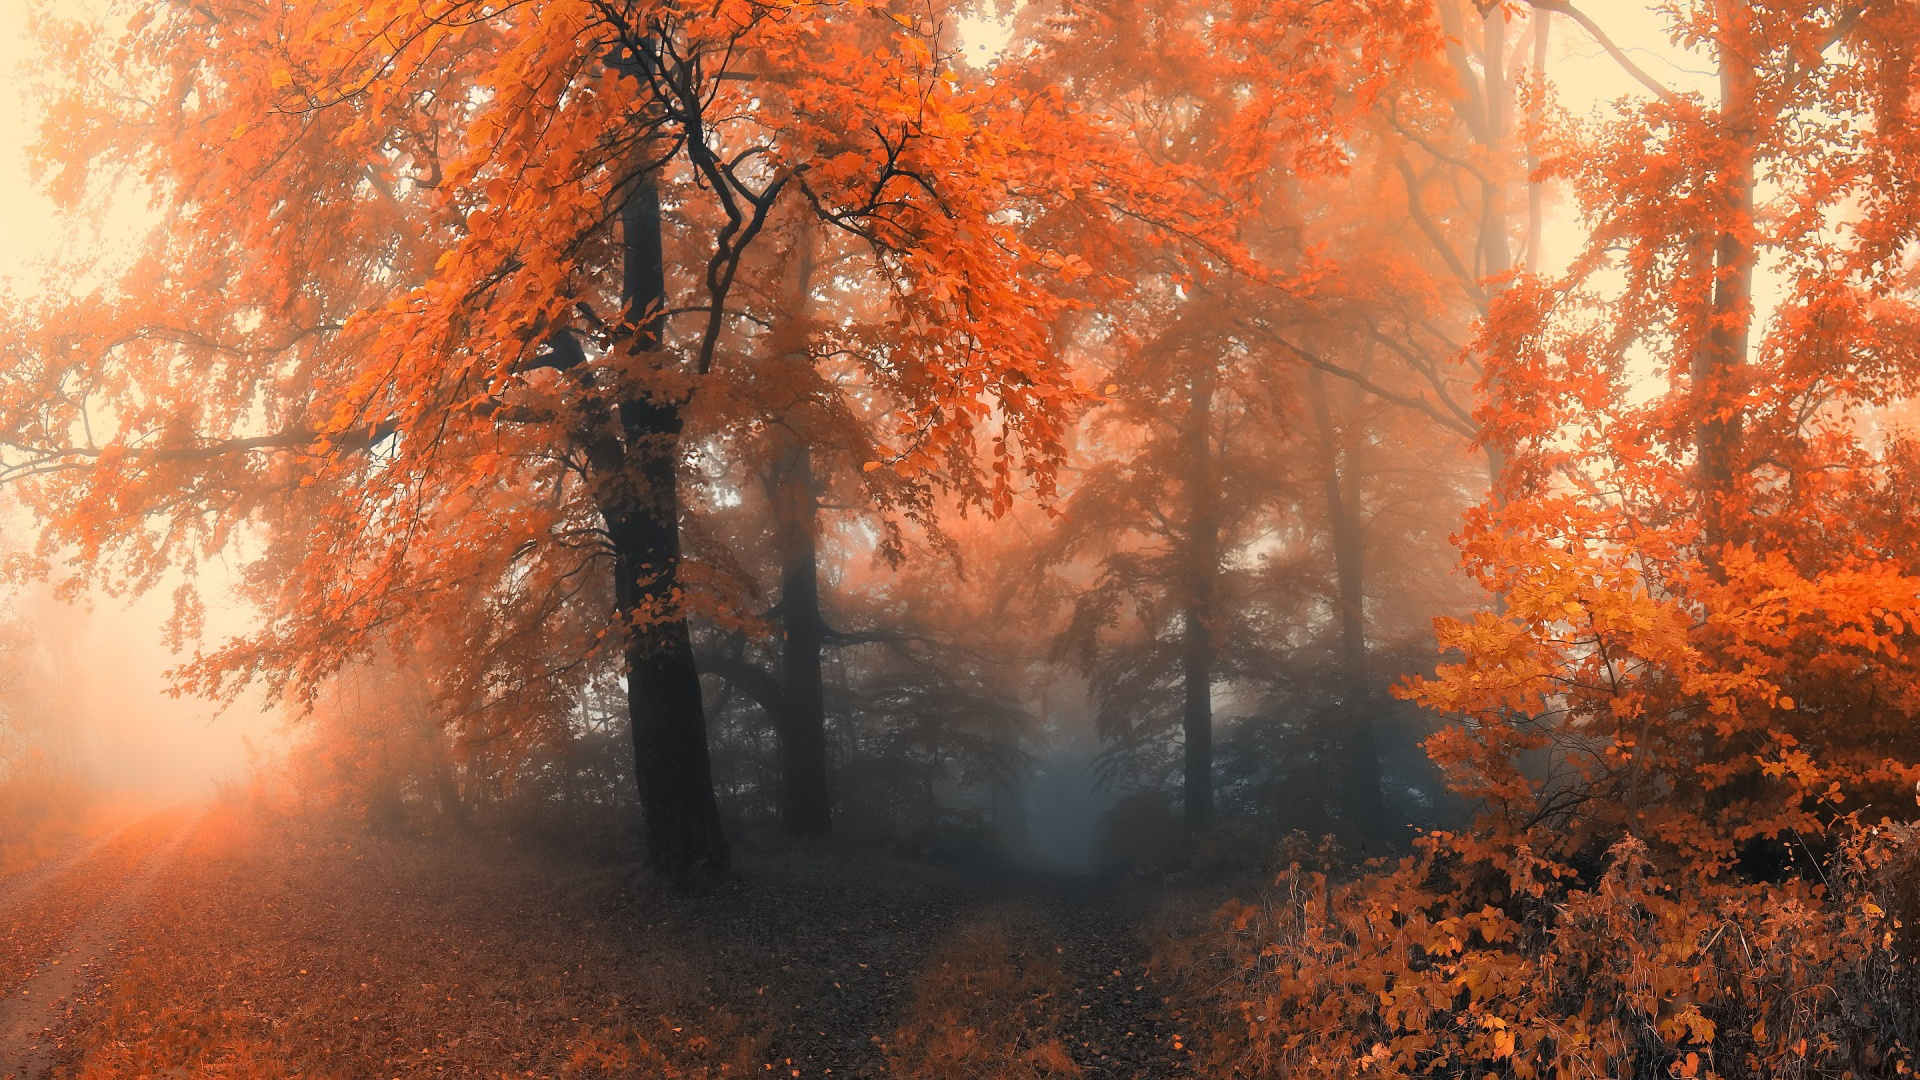 Free Fall Images Desktop Wallpaper Autumn Forest Wallpaper For Desktop Pixelstalk Net